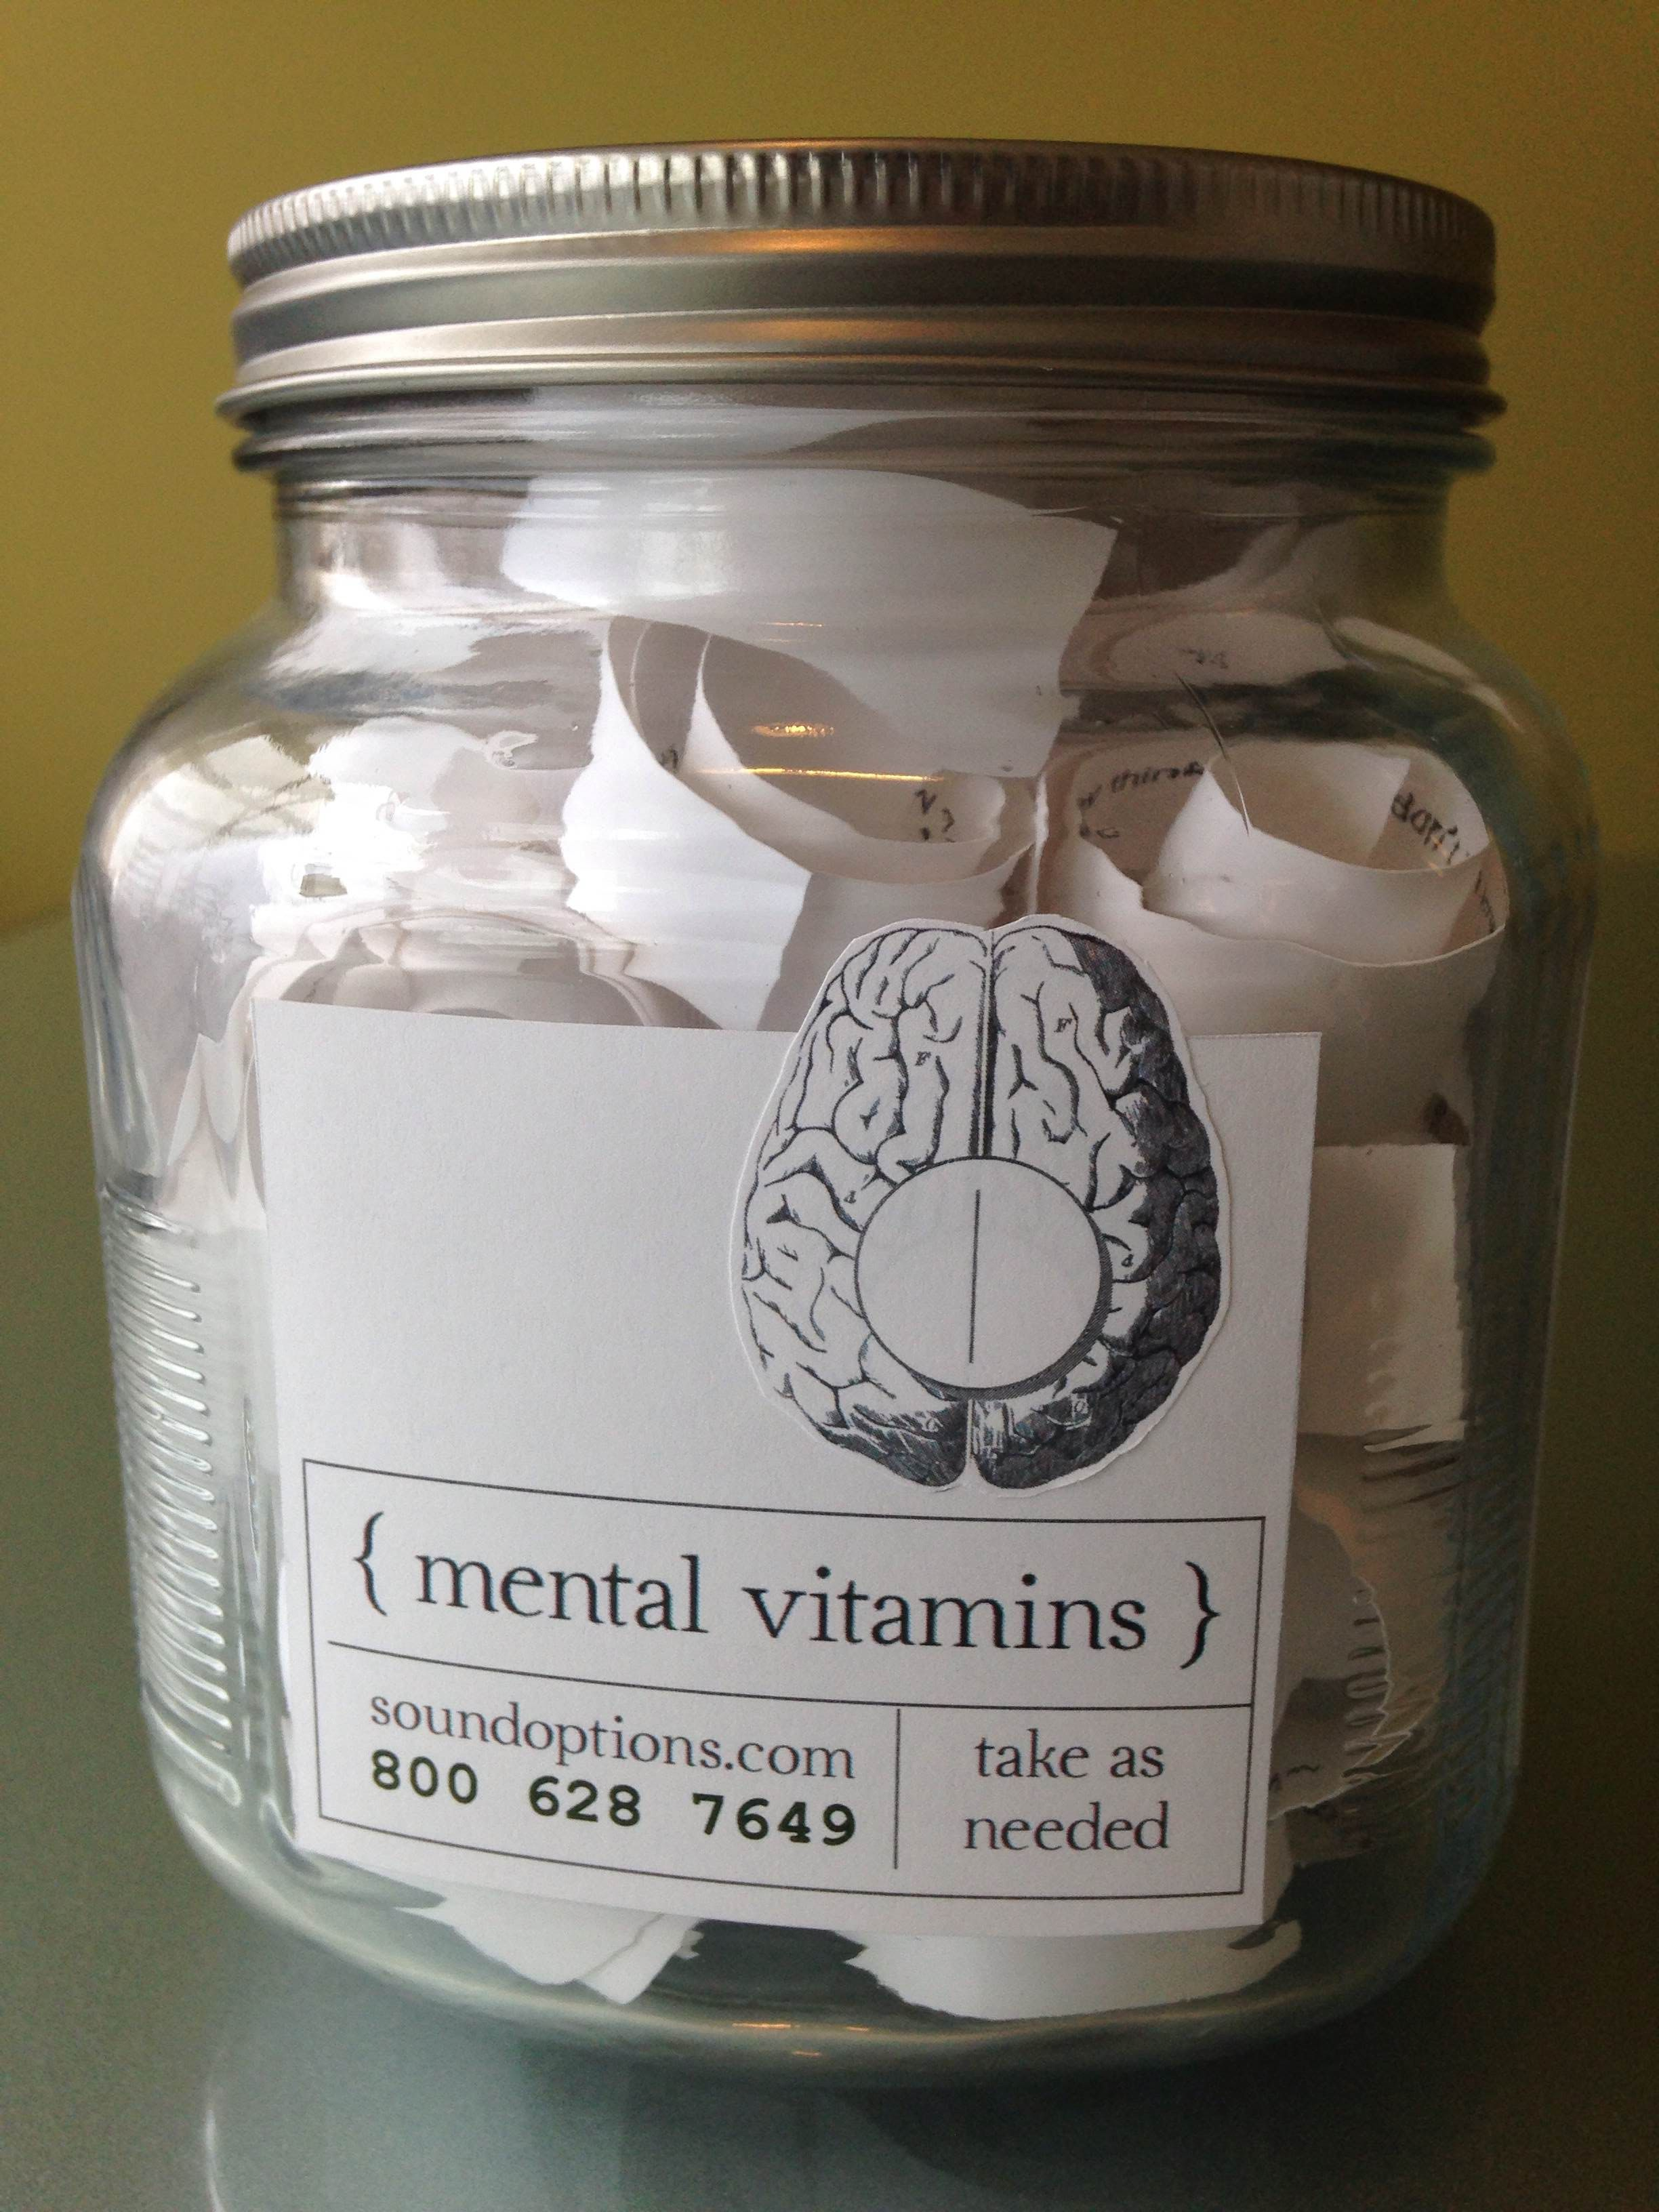 Quotes Jar Mental Vitamins Fill A Jar With Rolled Up Quotes To Act As